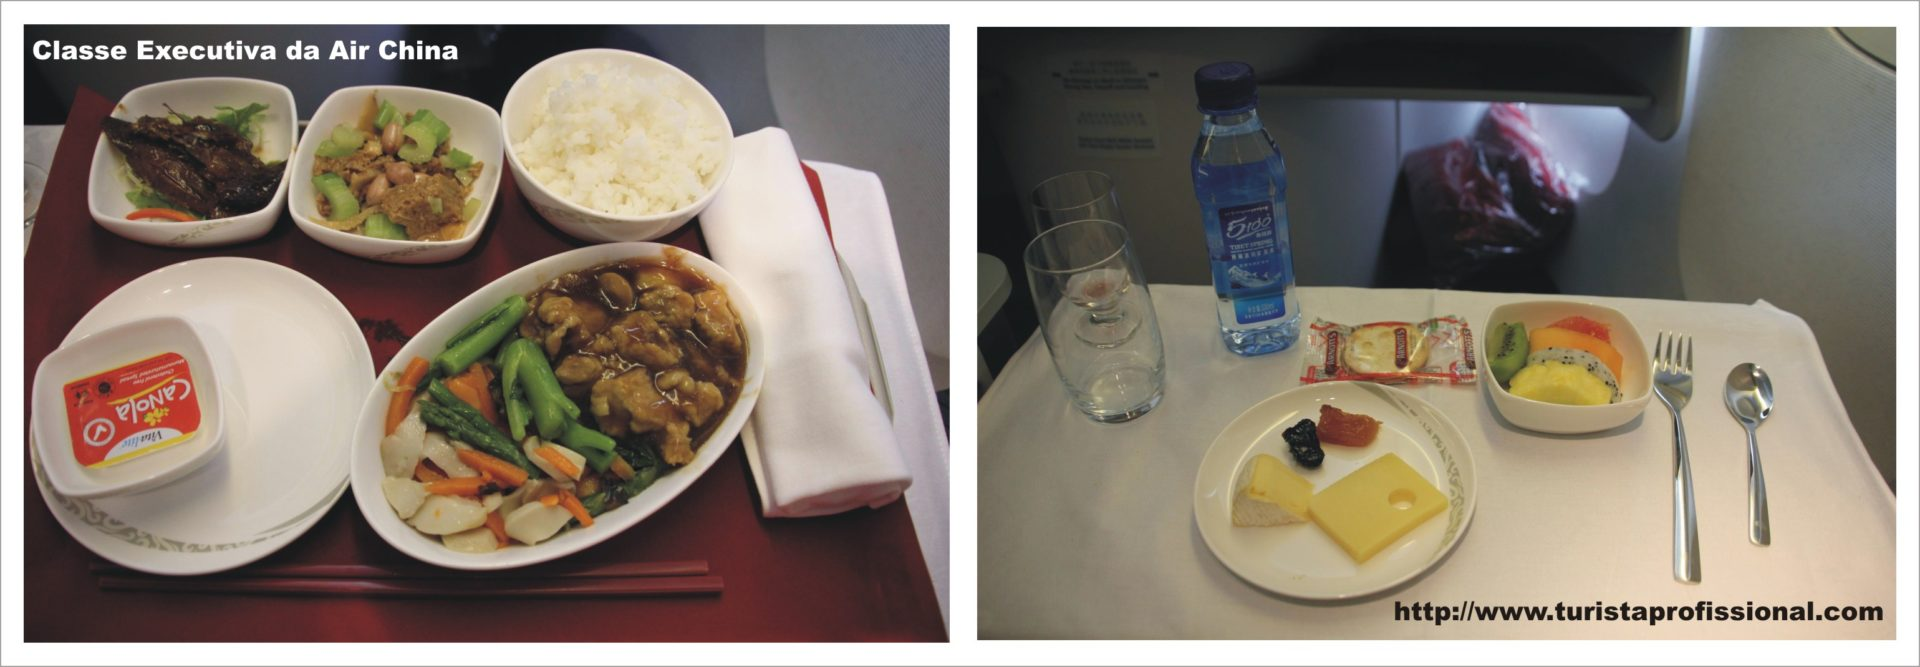 Classe Executiva Air China - comida